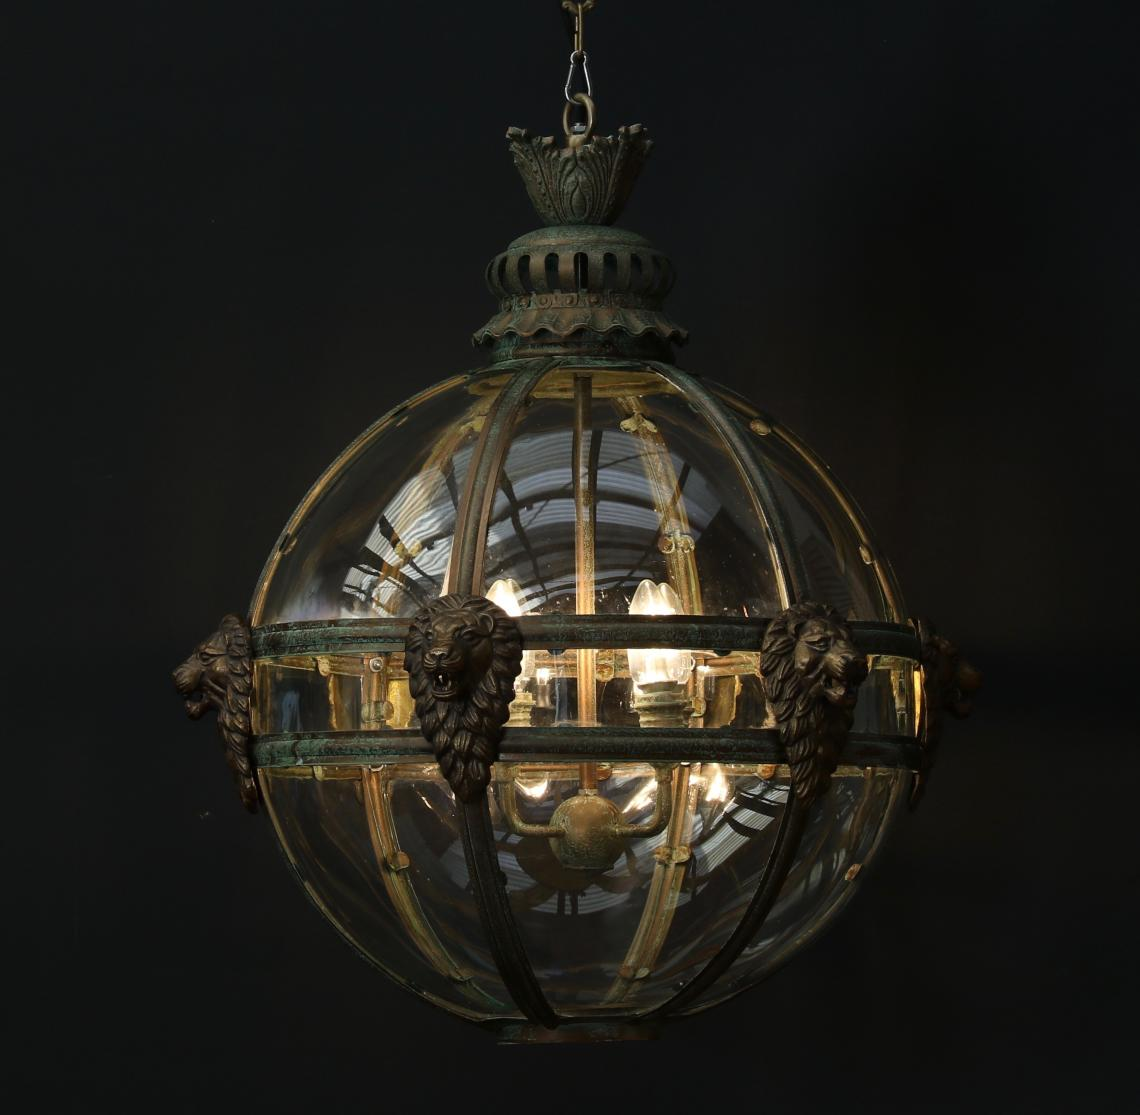 Spherical Globe Lion Lantern